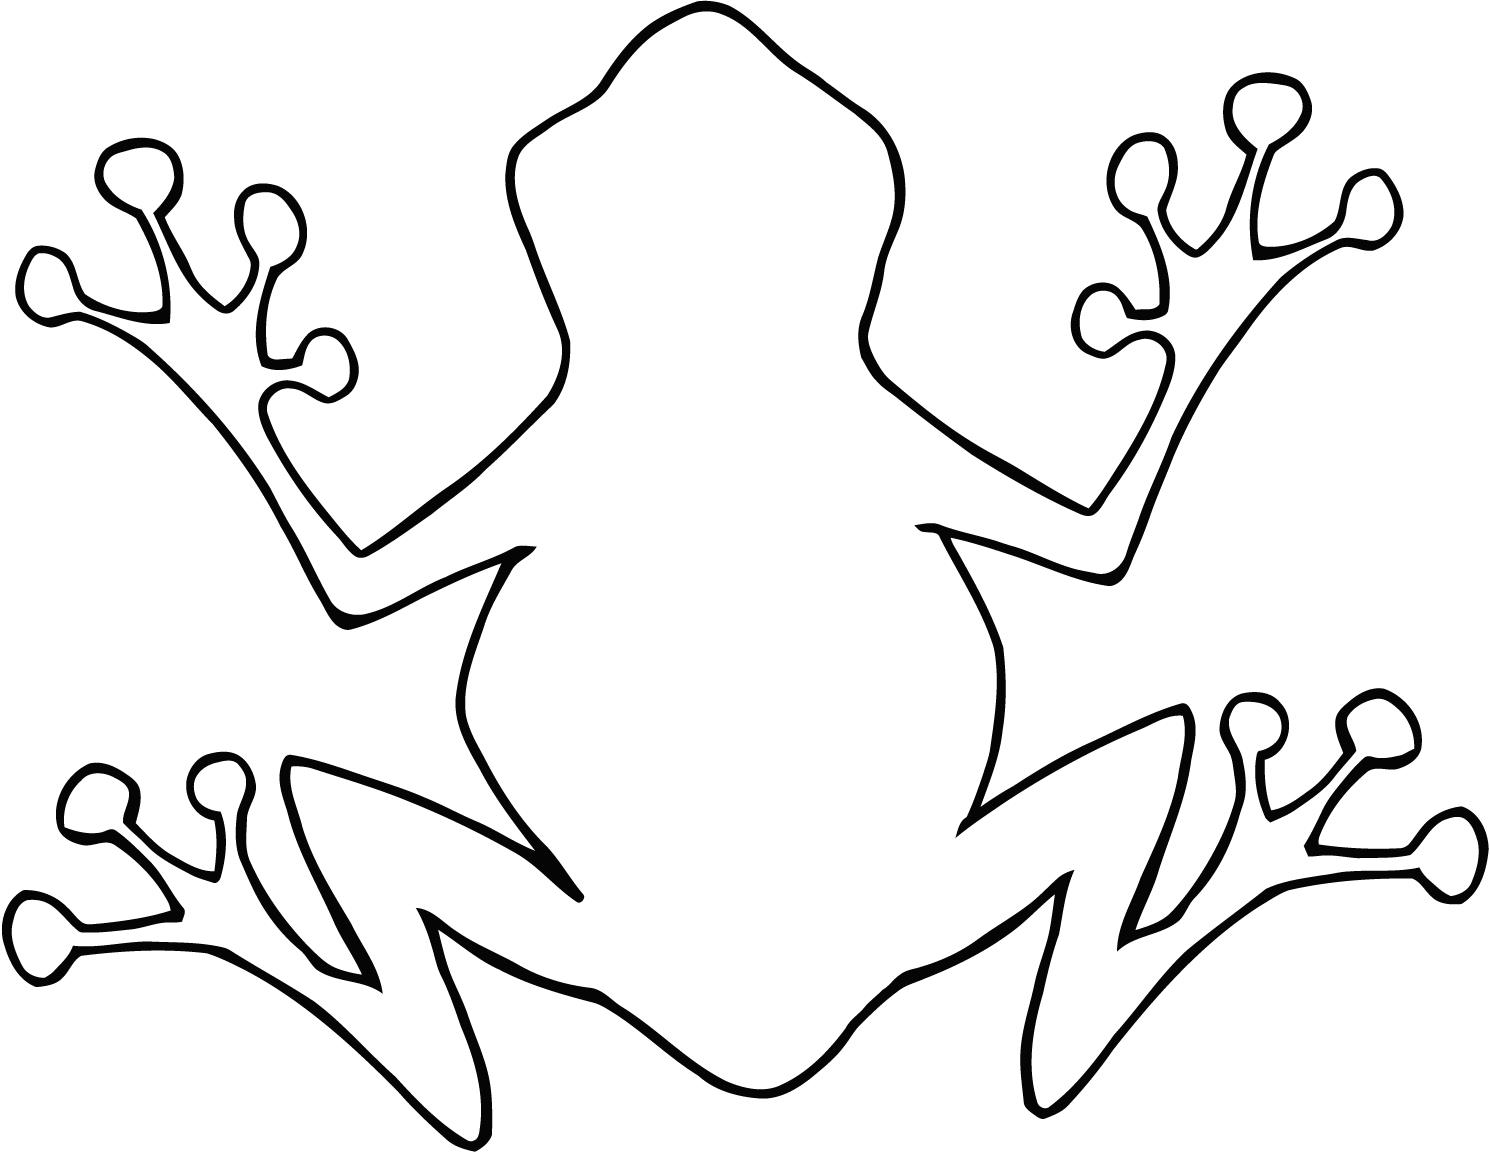 Out Line Drawing Of Animals : Tree frog outline clipart panda free images